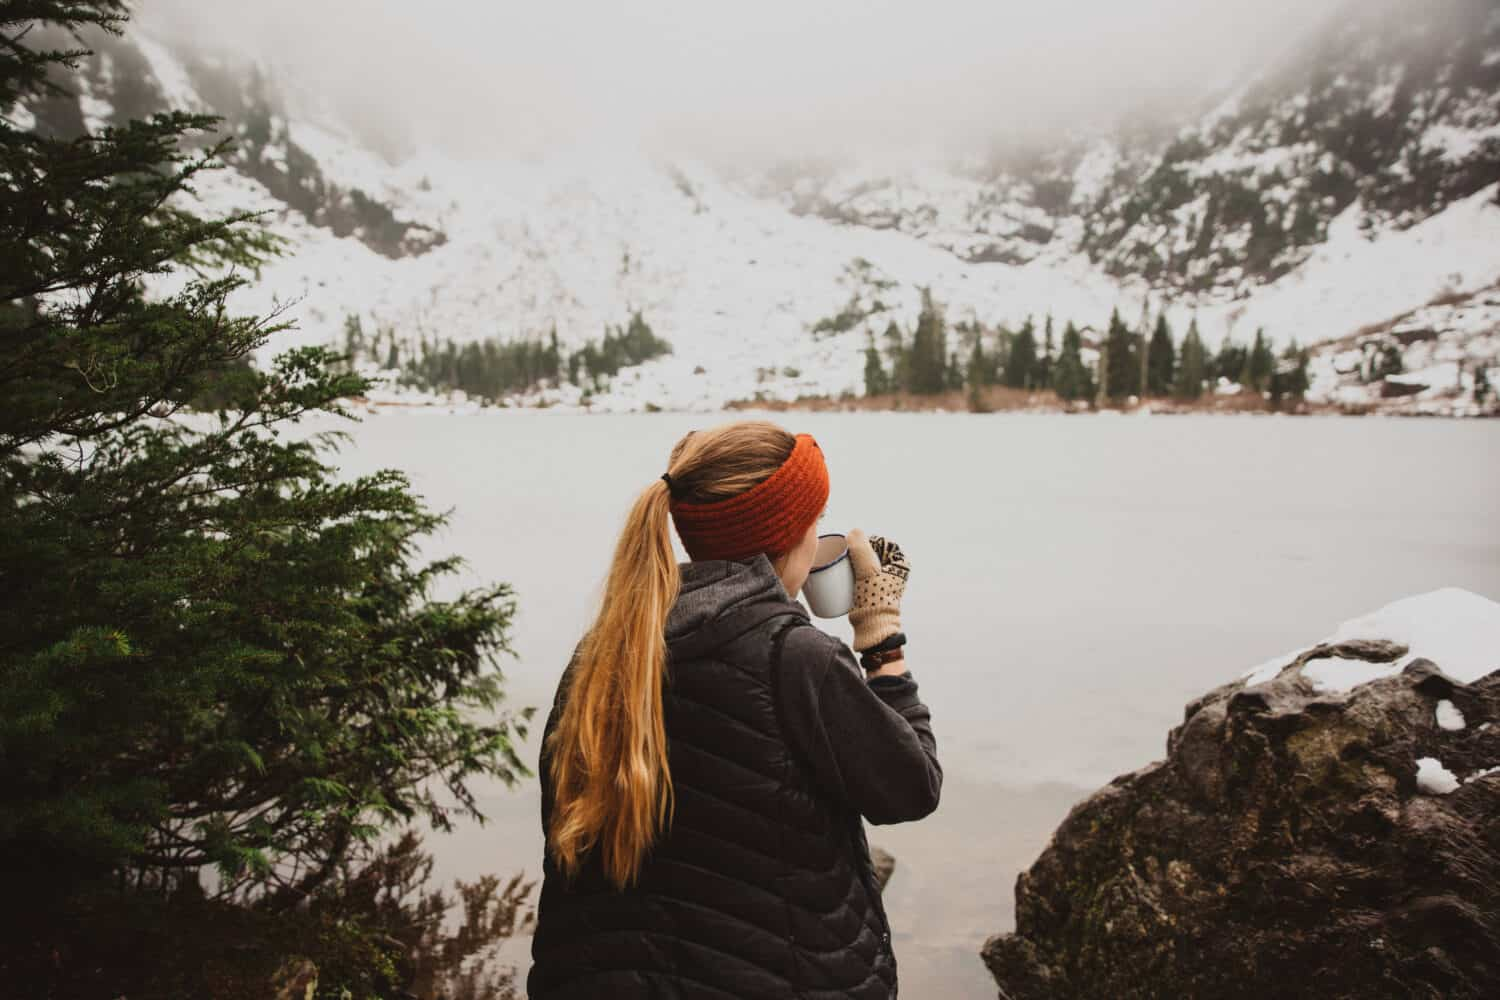 Emily Mandagie sipping coffee at Heather Lake - Mountain Loop Highway - Hiking Trails Near Seattle, Washington - Themandagies.com